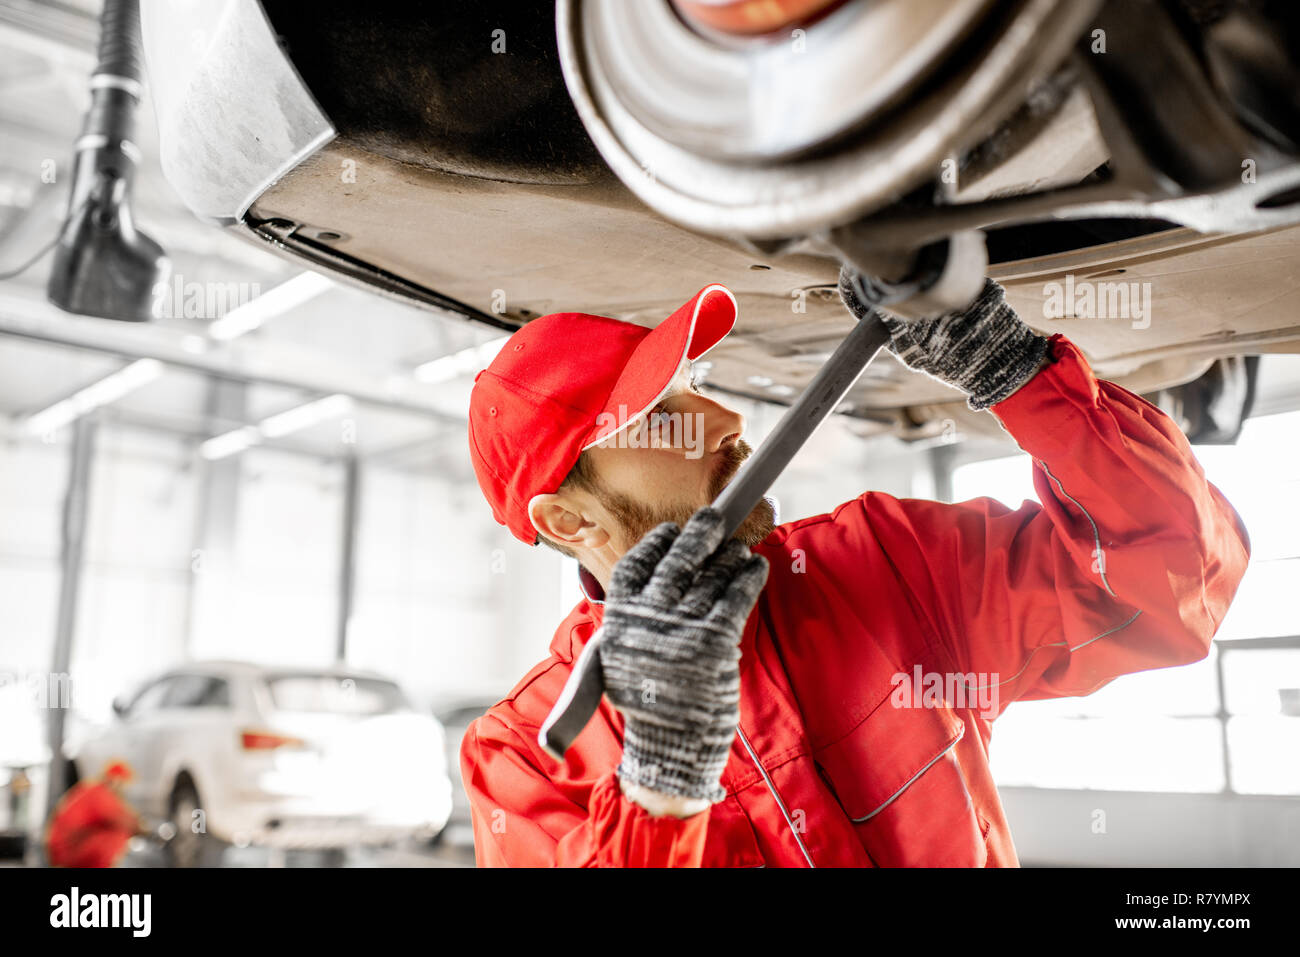 Auto mechanic in red uniform diagnosing car on the hoist at the car service - Stock Image